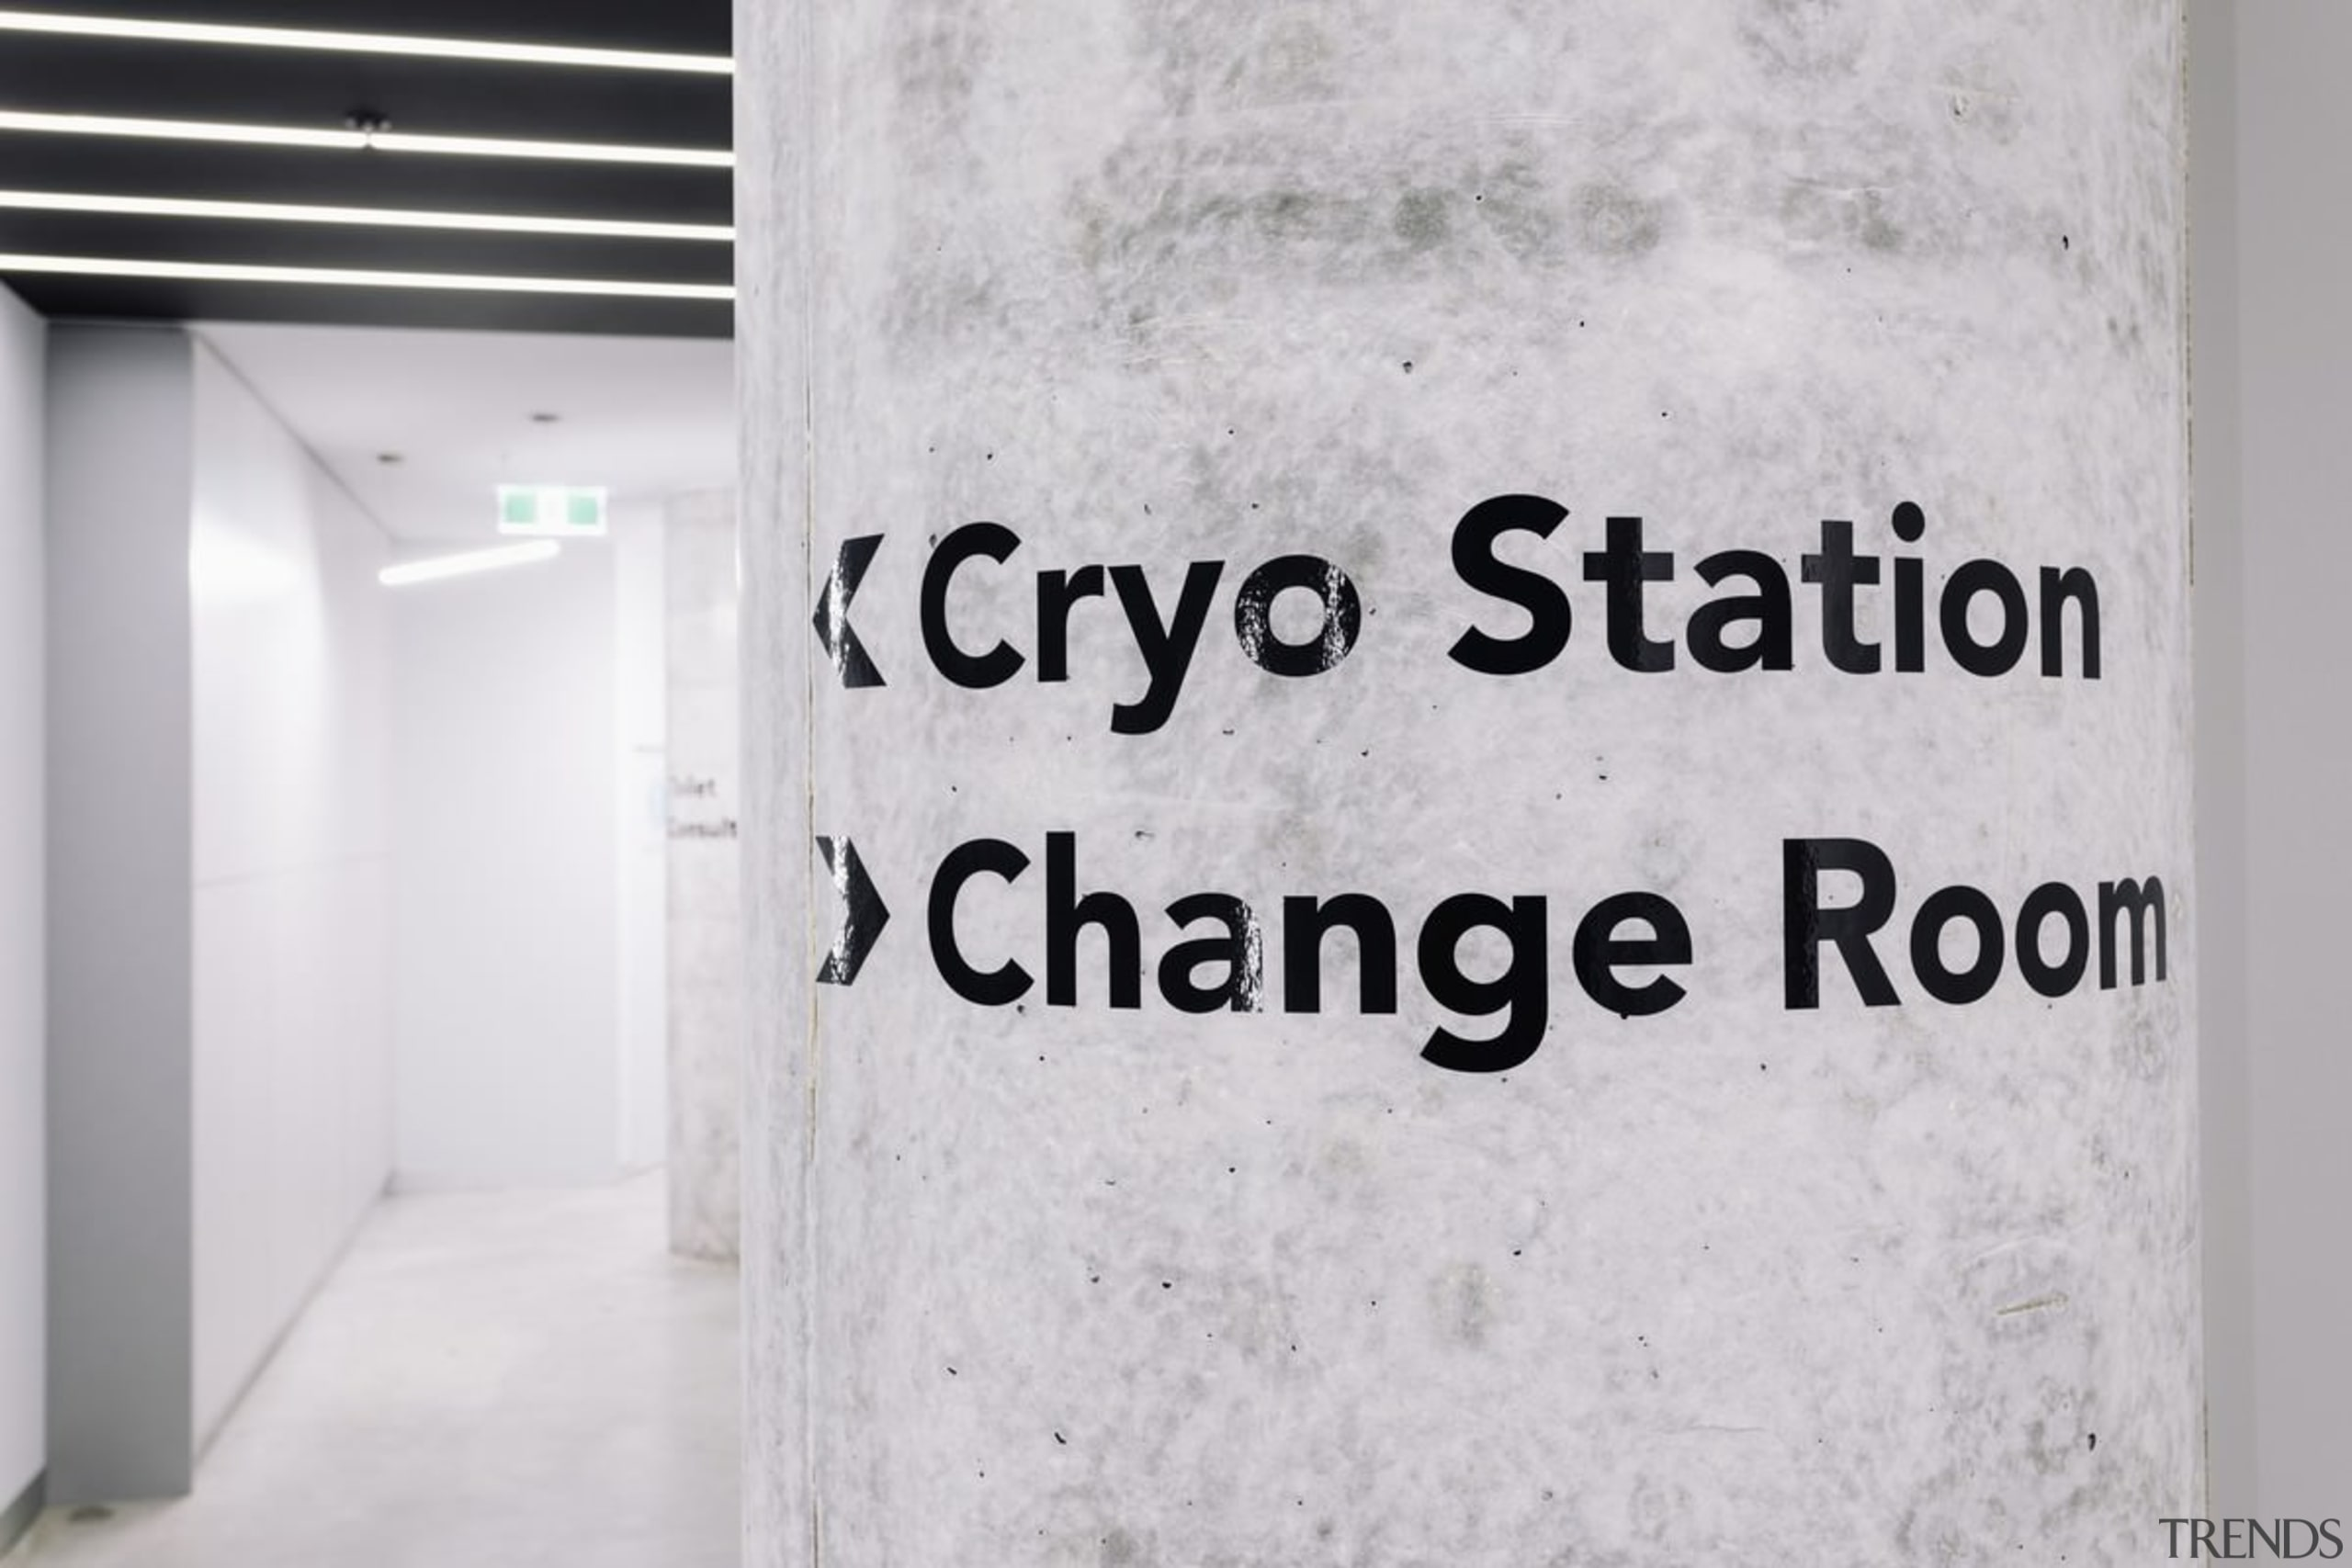 A closer view of the signage - A font, text, wall, gray